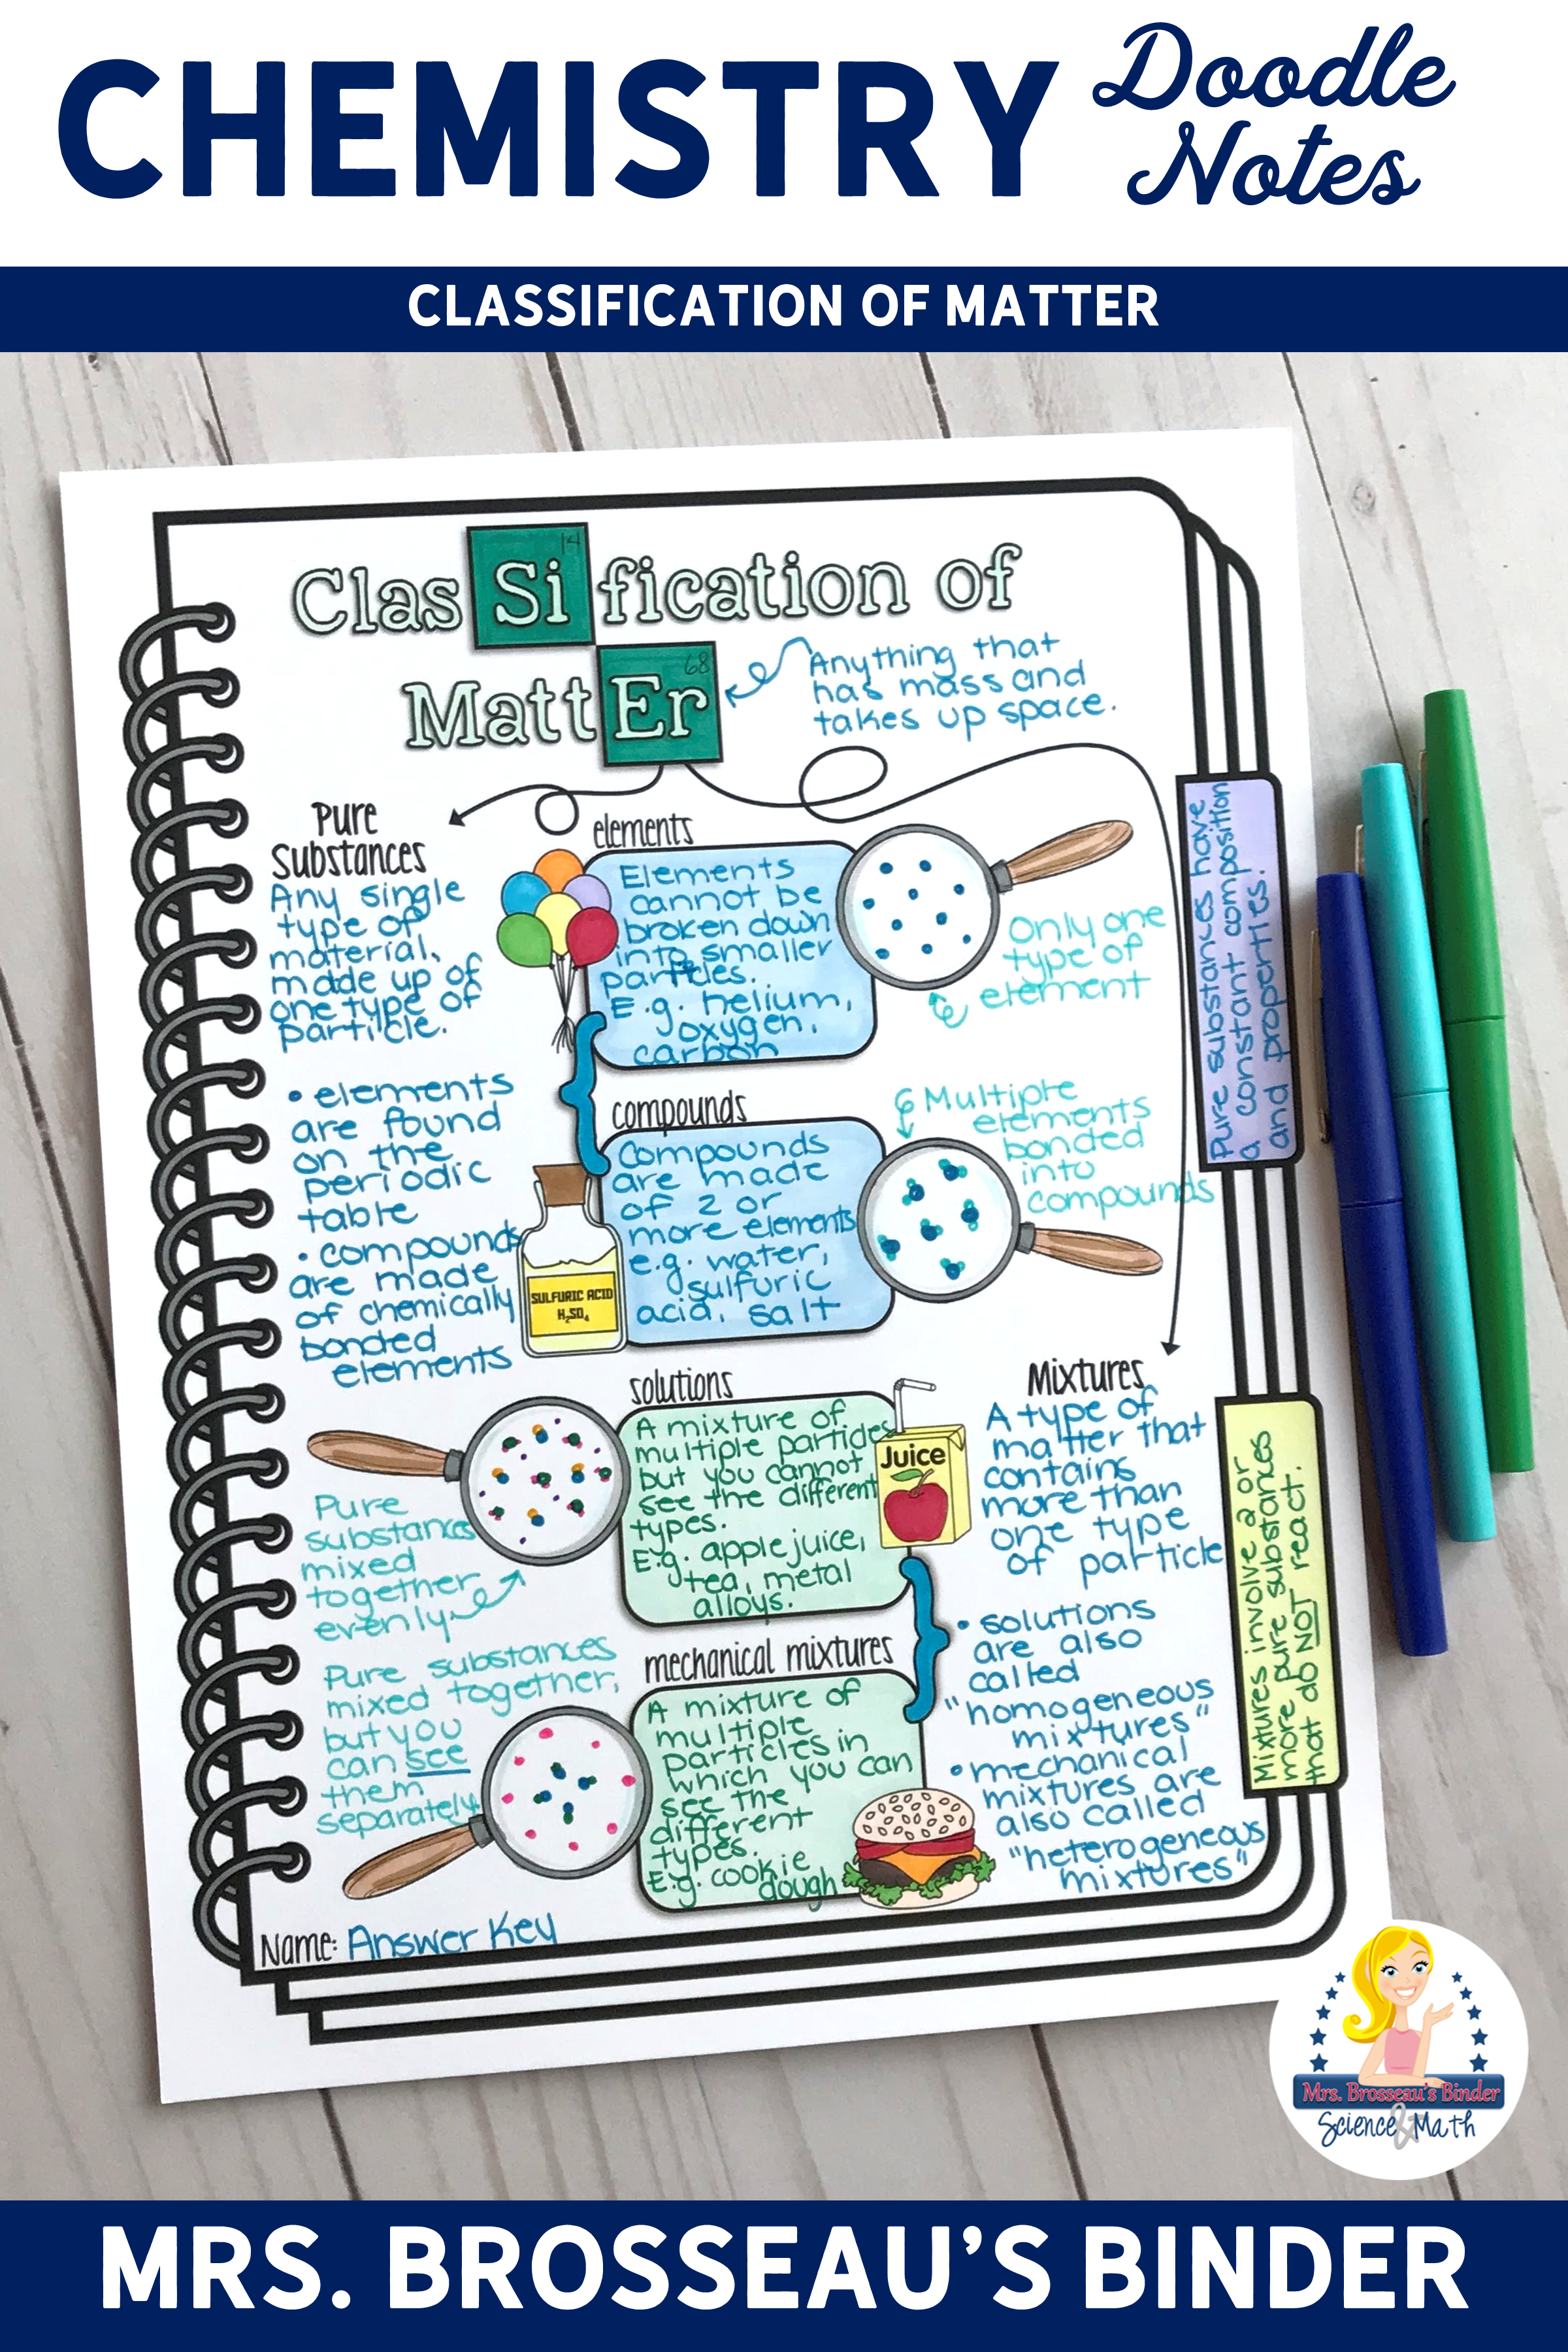 Classification Of Matter Doodle Note